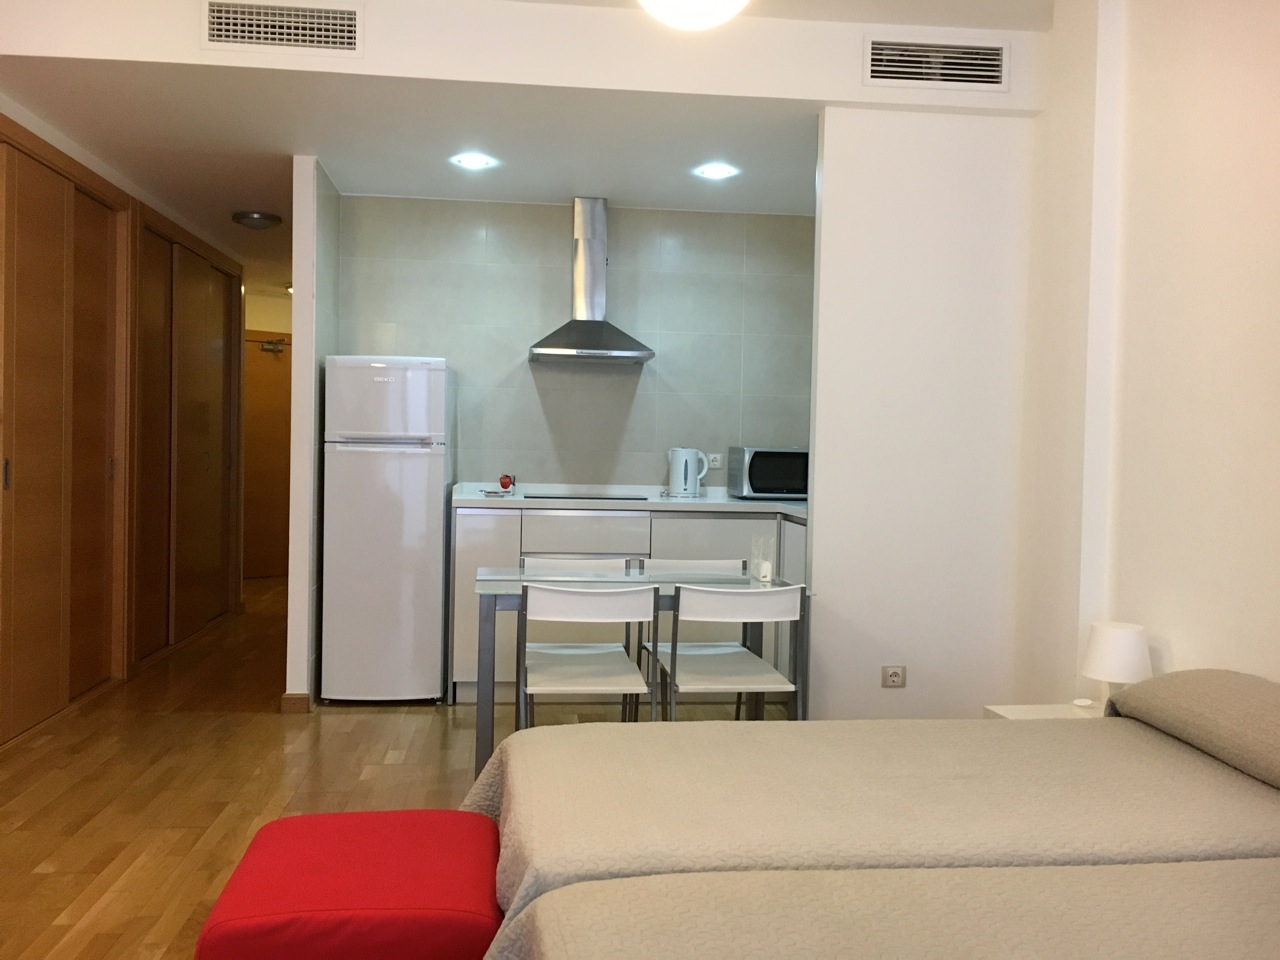 ons appartement in Malaga